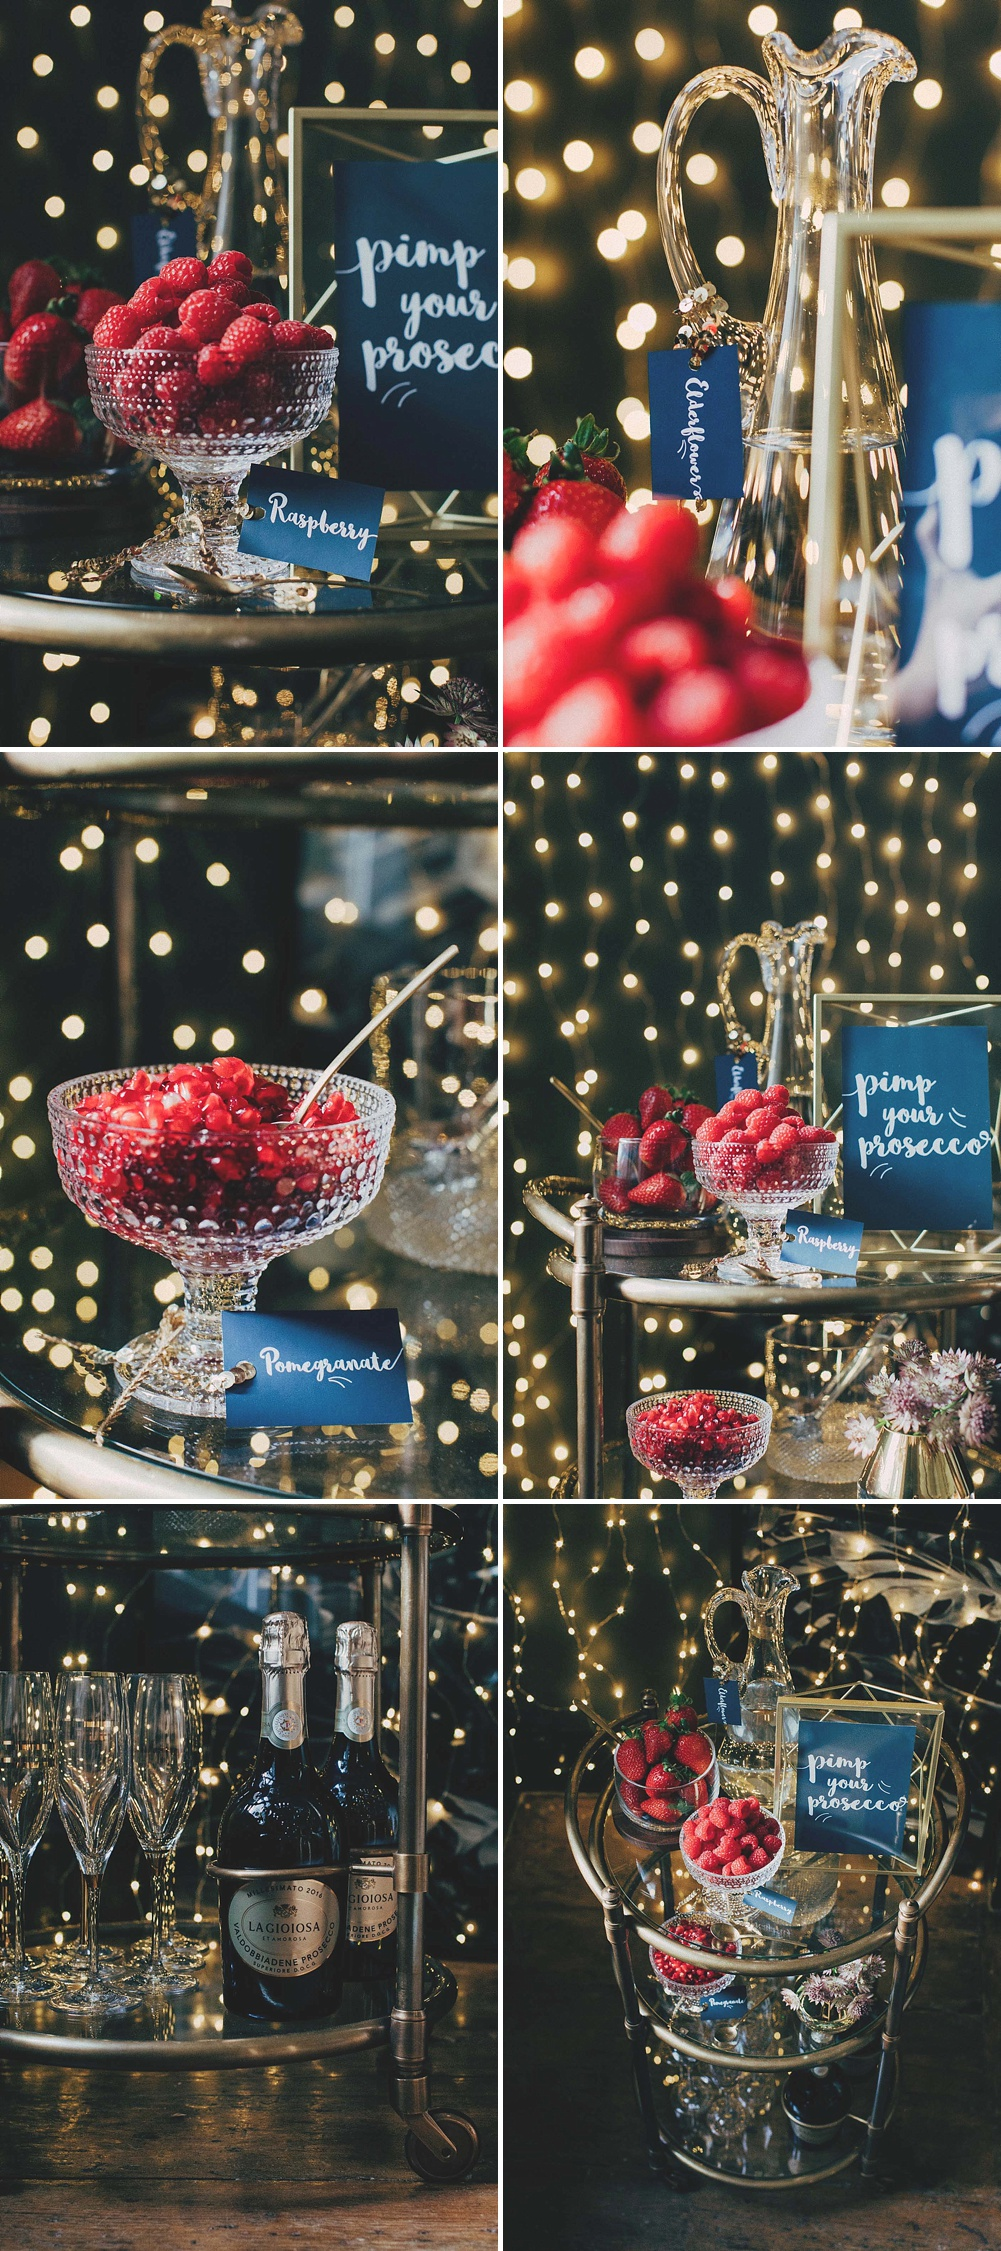 Sparkly DIY Pimp Your Prosecco Bar For Weddings & Parties With Gold Details & Lots Of Fairy Lights